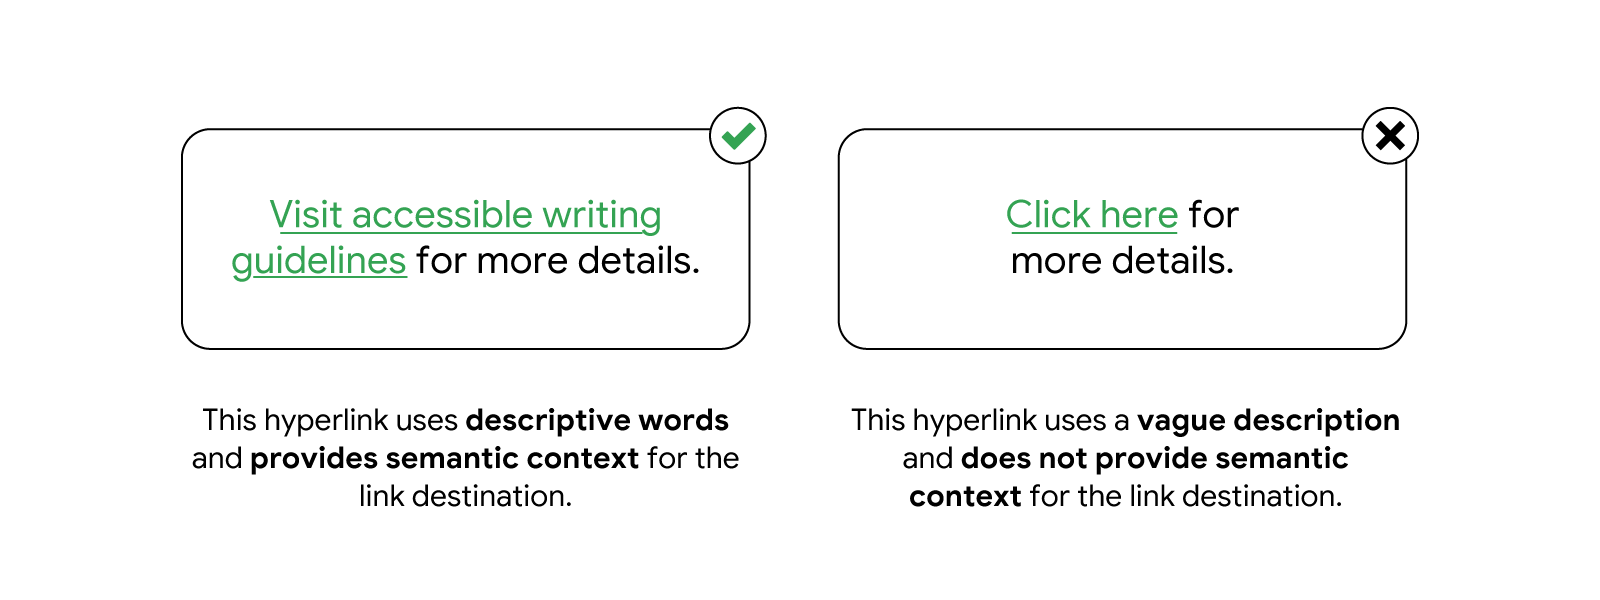 "Image shows how to describe hyperlinked text. ""Visit accessible writing guidelines"" uses descriptive words and semantic context for the link destination, while ""click here"" does neither."